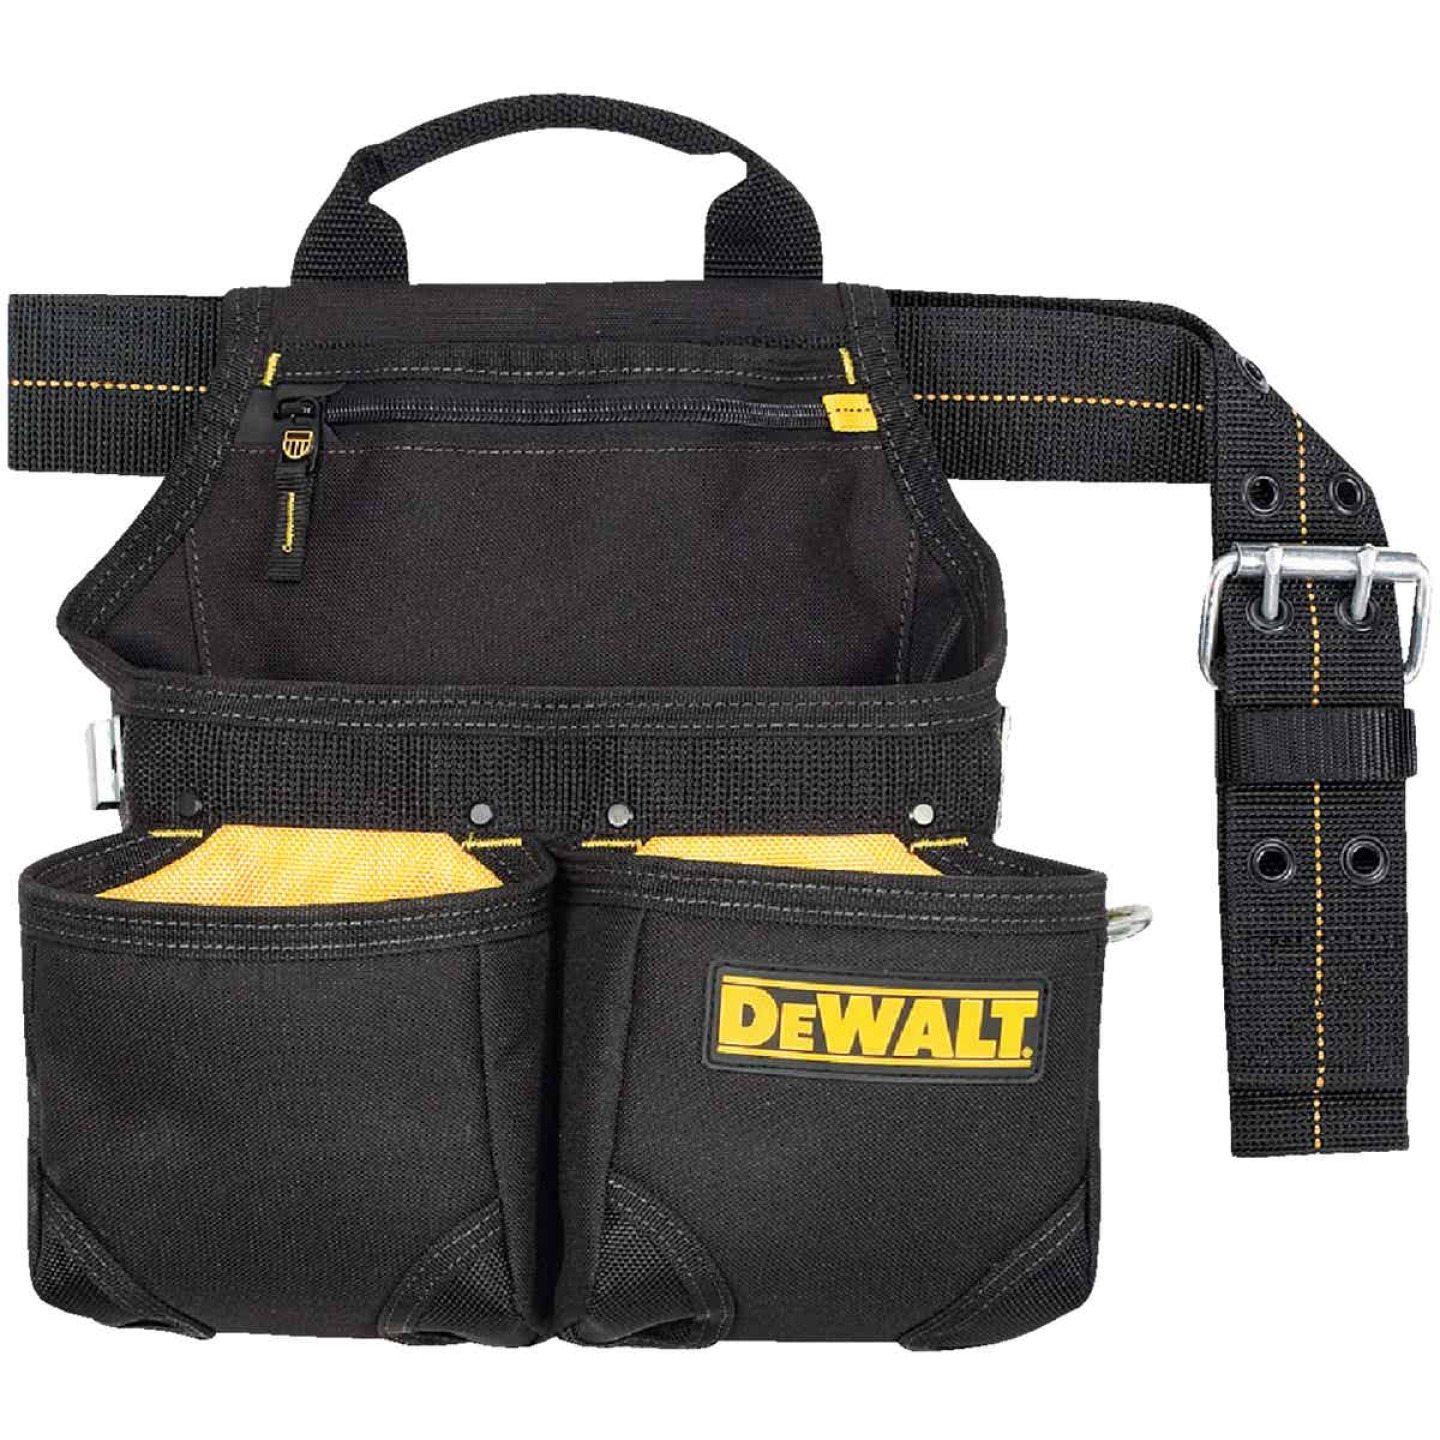 DeWalt 6-Pocket Nylon Framer's Nail & Tool Bag with Belt Image 2